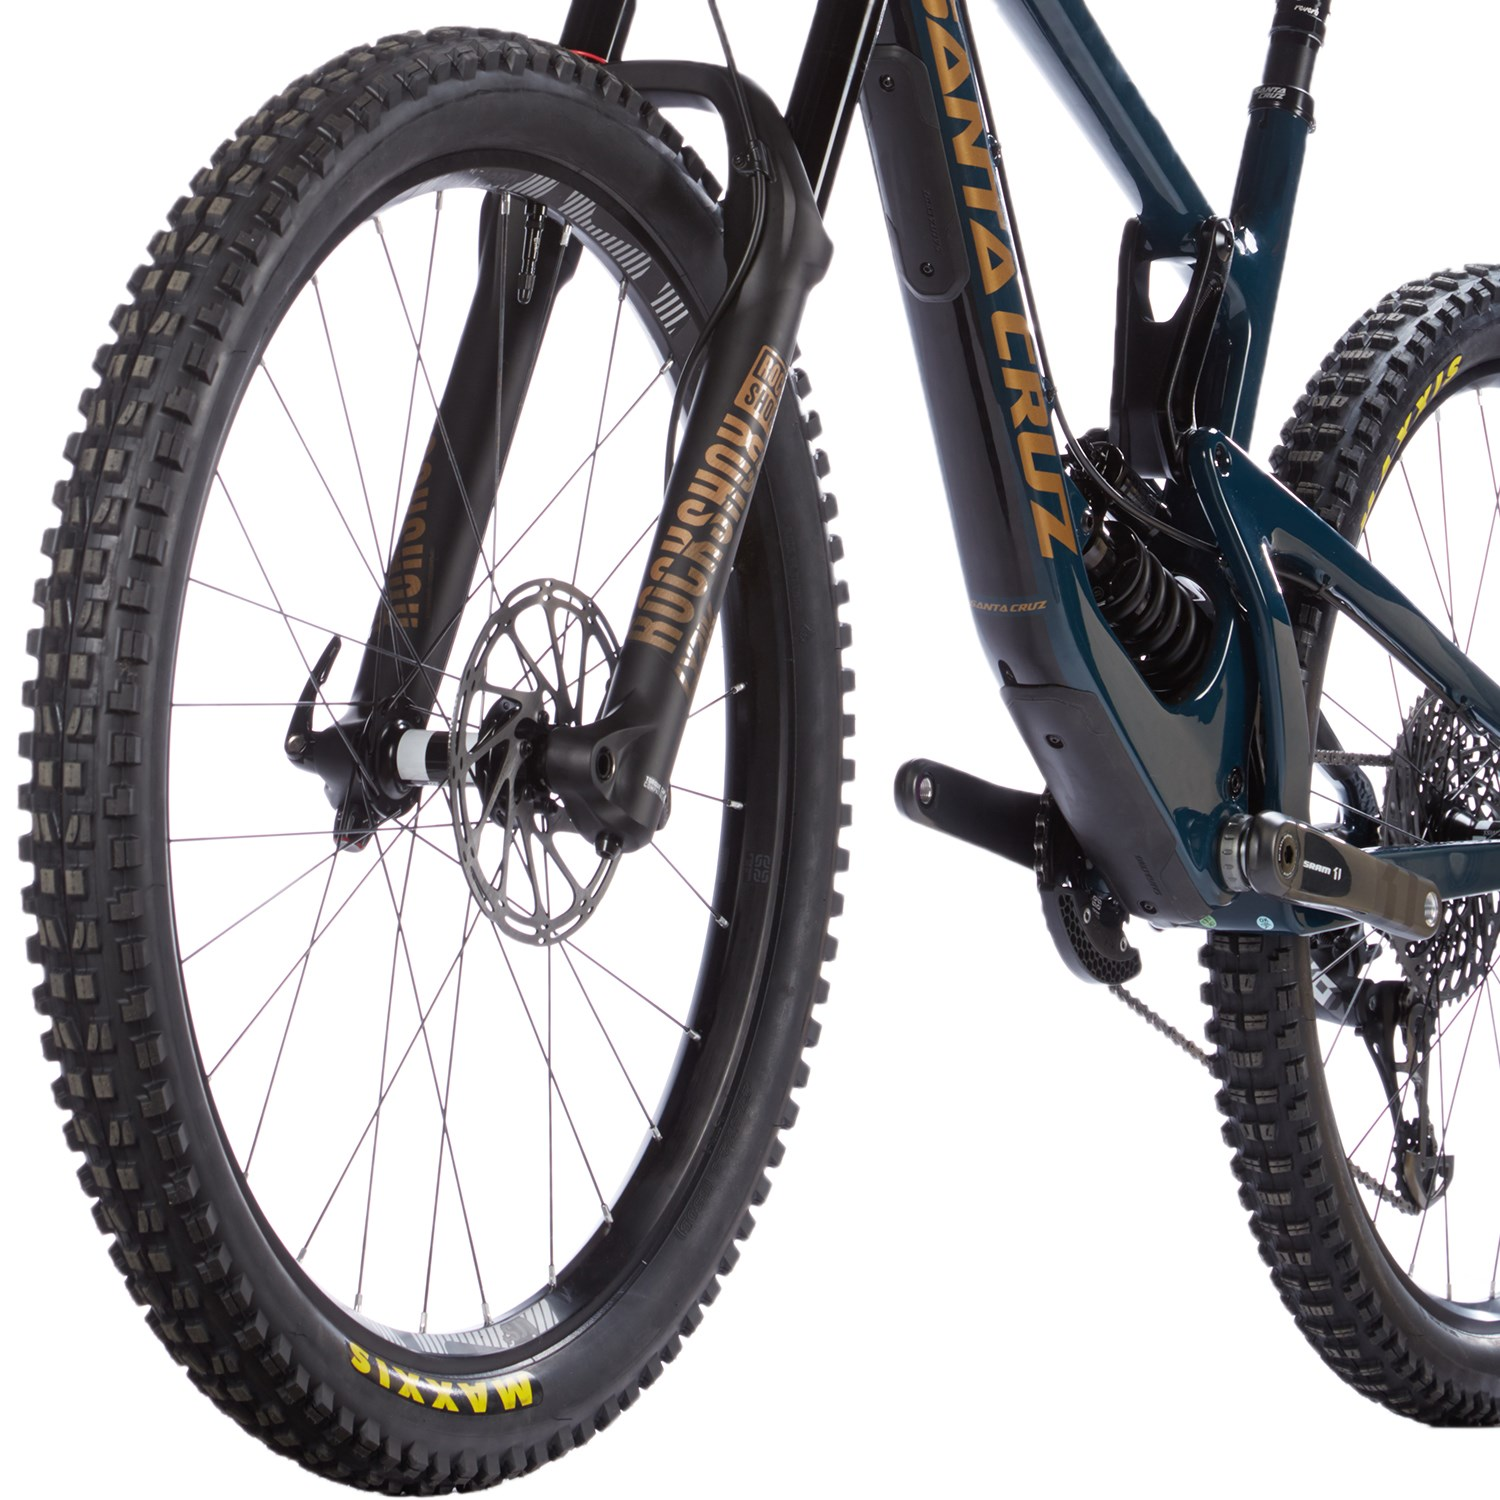 Santa Cruz Bicycles Nomad 4 CC X01 Complete Mountain Bike 2018 | evo